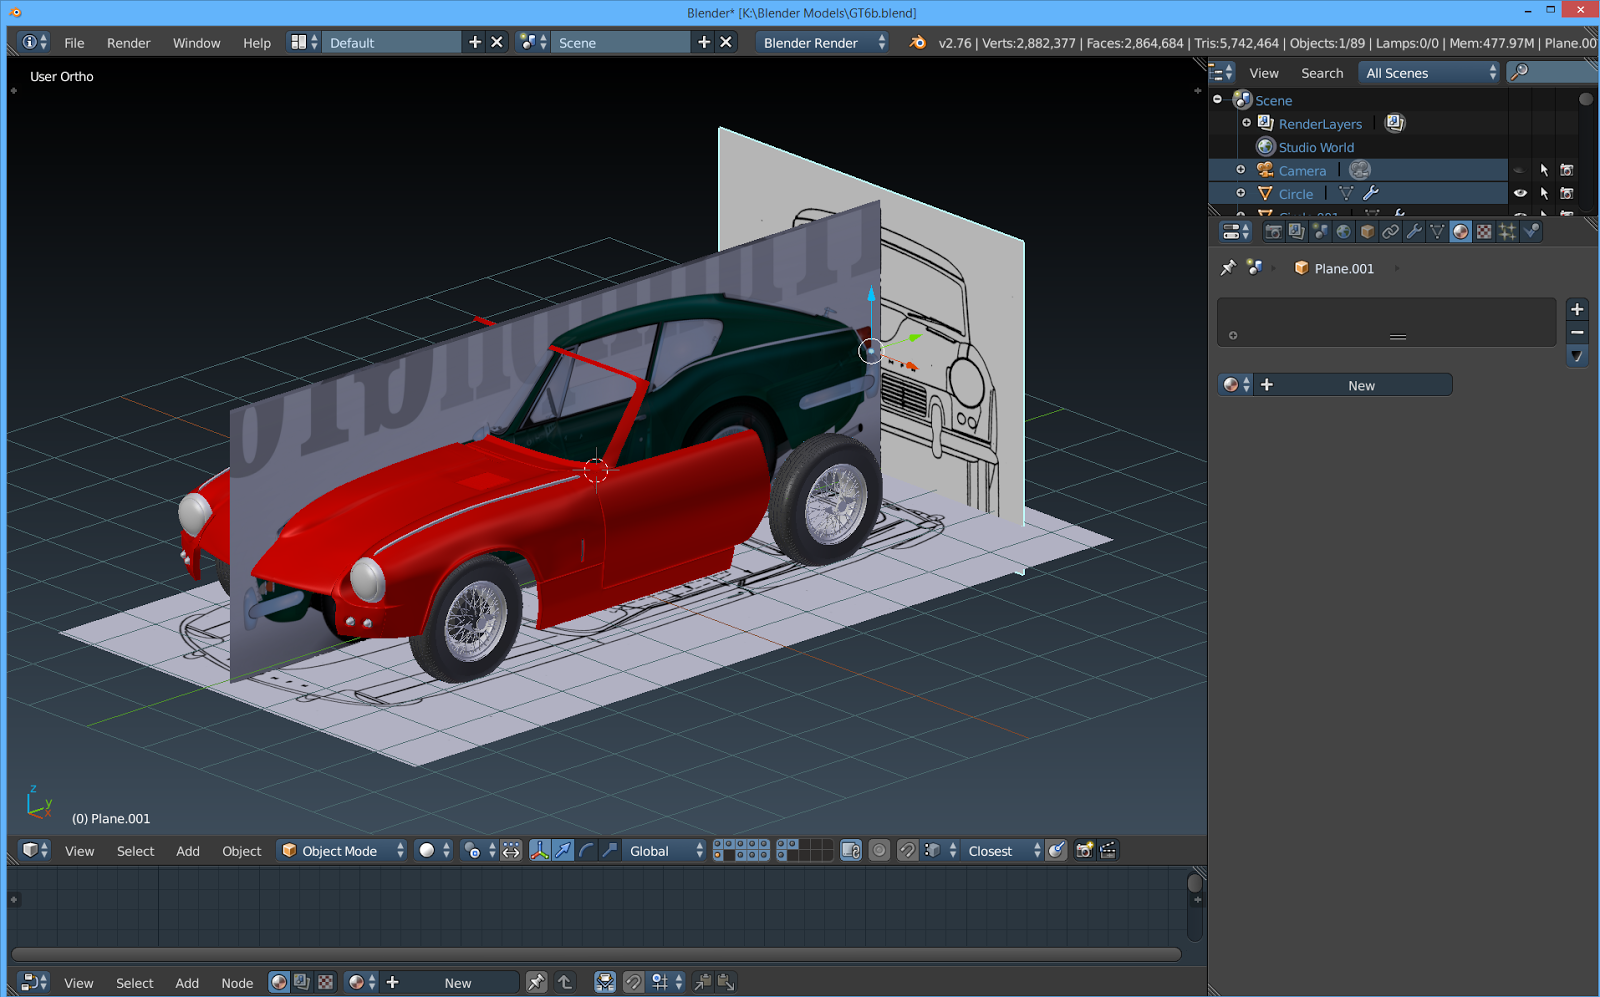 The tinkers workshop blender triumph gt6 model progress like the other blender car models that ive worked on this one is not much different in its construction the blueprint layout of the sides front malvernweather Image collections